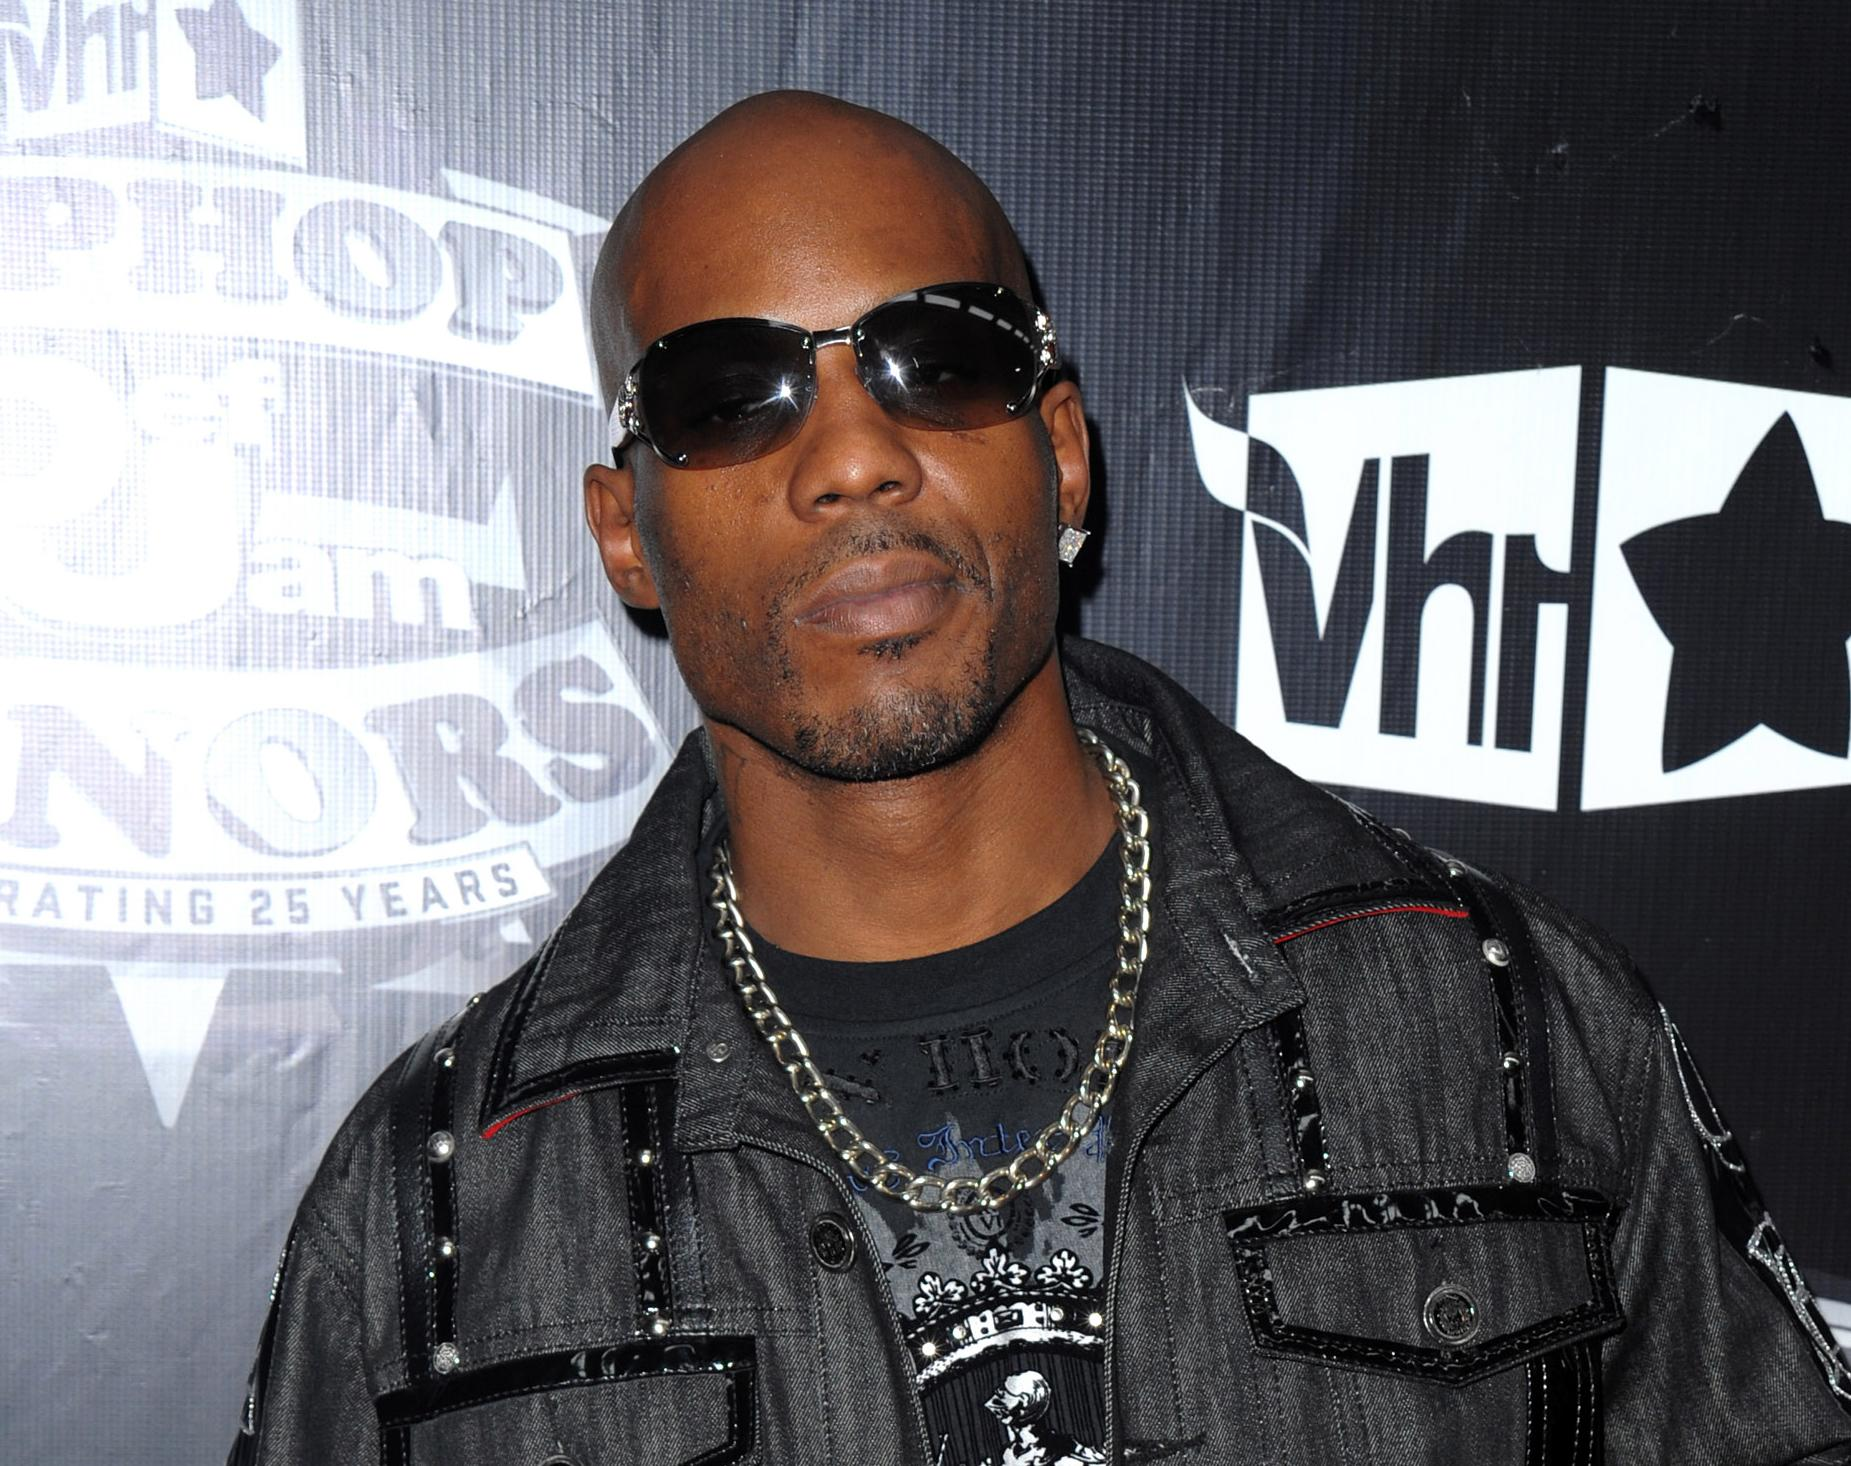 Rapper DMX revived by Narcan — the opioid antitdote that stops an overdose in its tracks